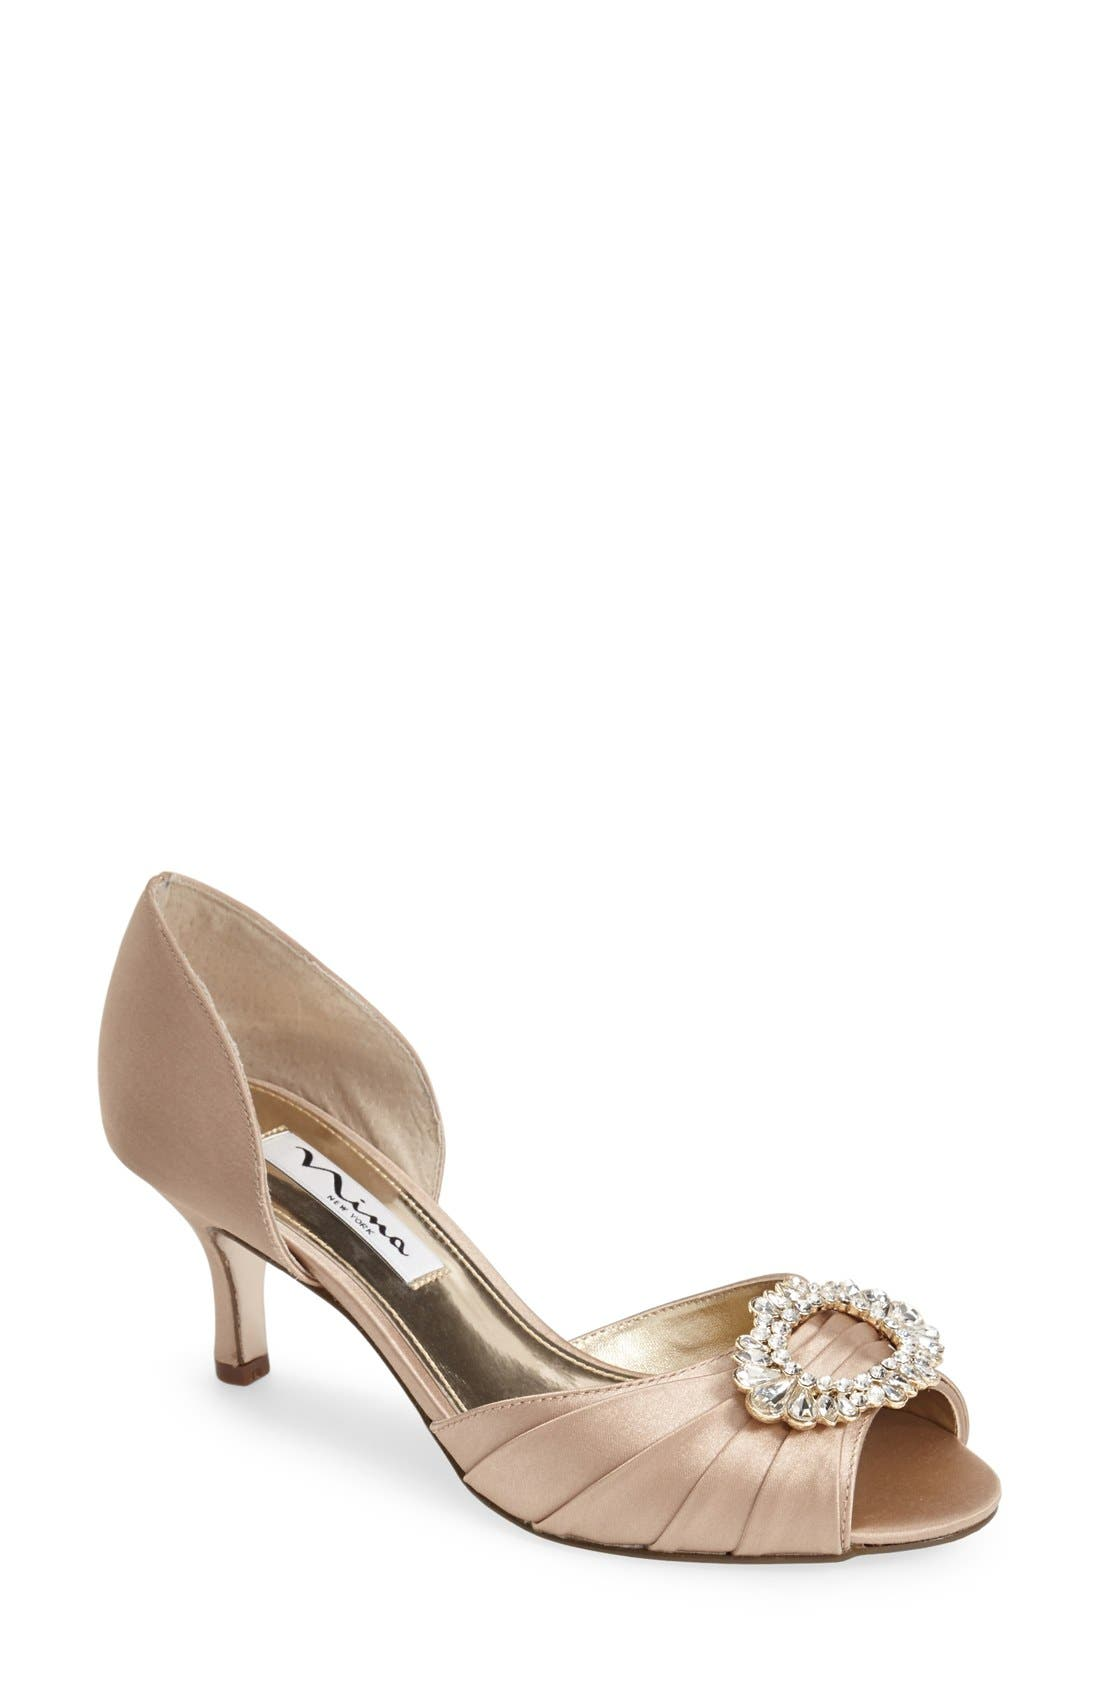 'Crystah' Embellished Satin Pump,                             Main thumbnail 1, color,                             291